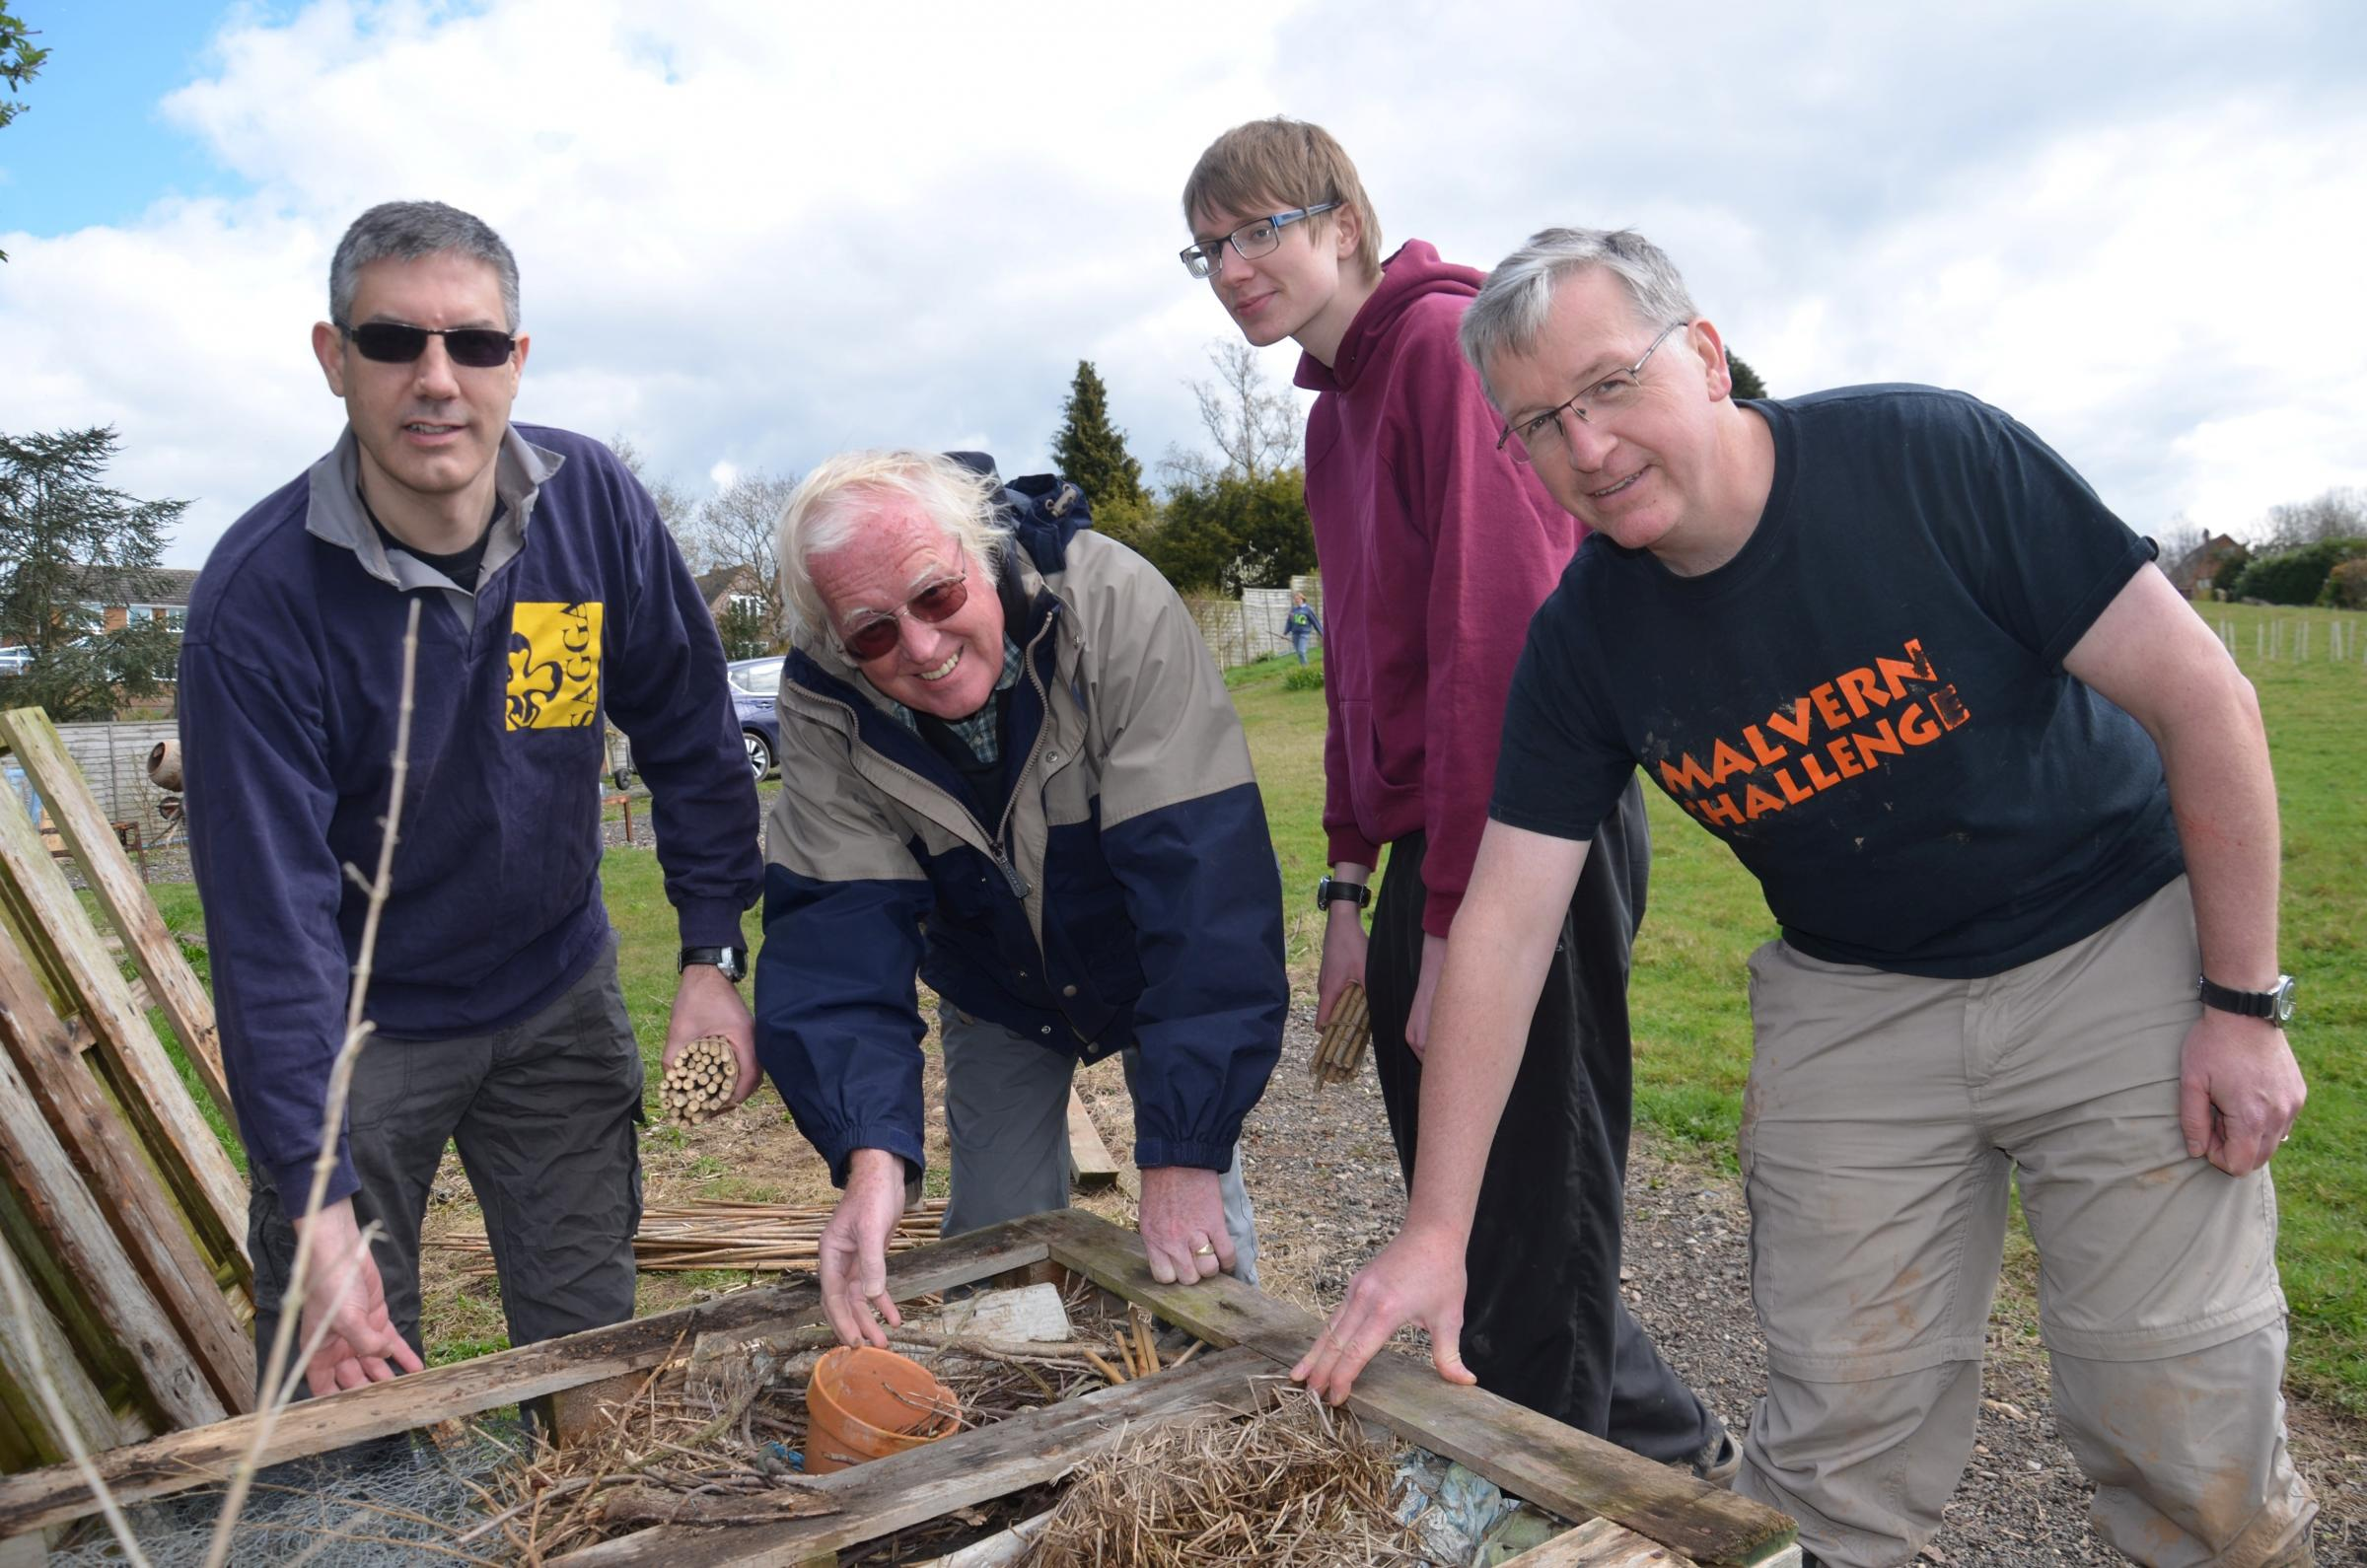 District explorer scout commissioner for Redditch Jonathan Payne, past President of SAGGA Paul Haigh from Cheltenham, explorer scout Adam Payne and scout leader Andy Harding from Burton-on-Trent helping to reconstruct the bug hotel at Nash's Acre.